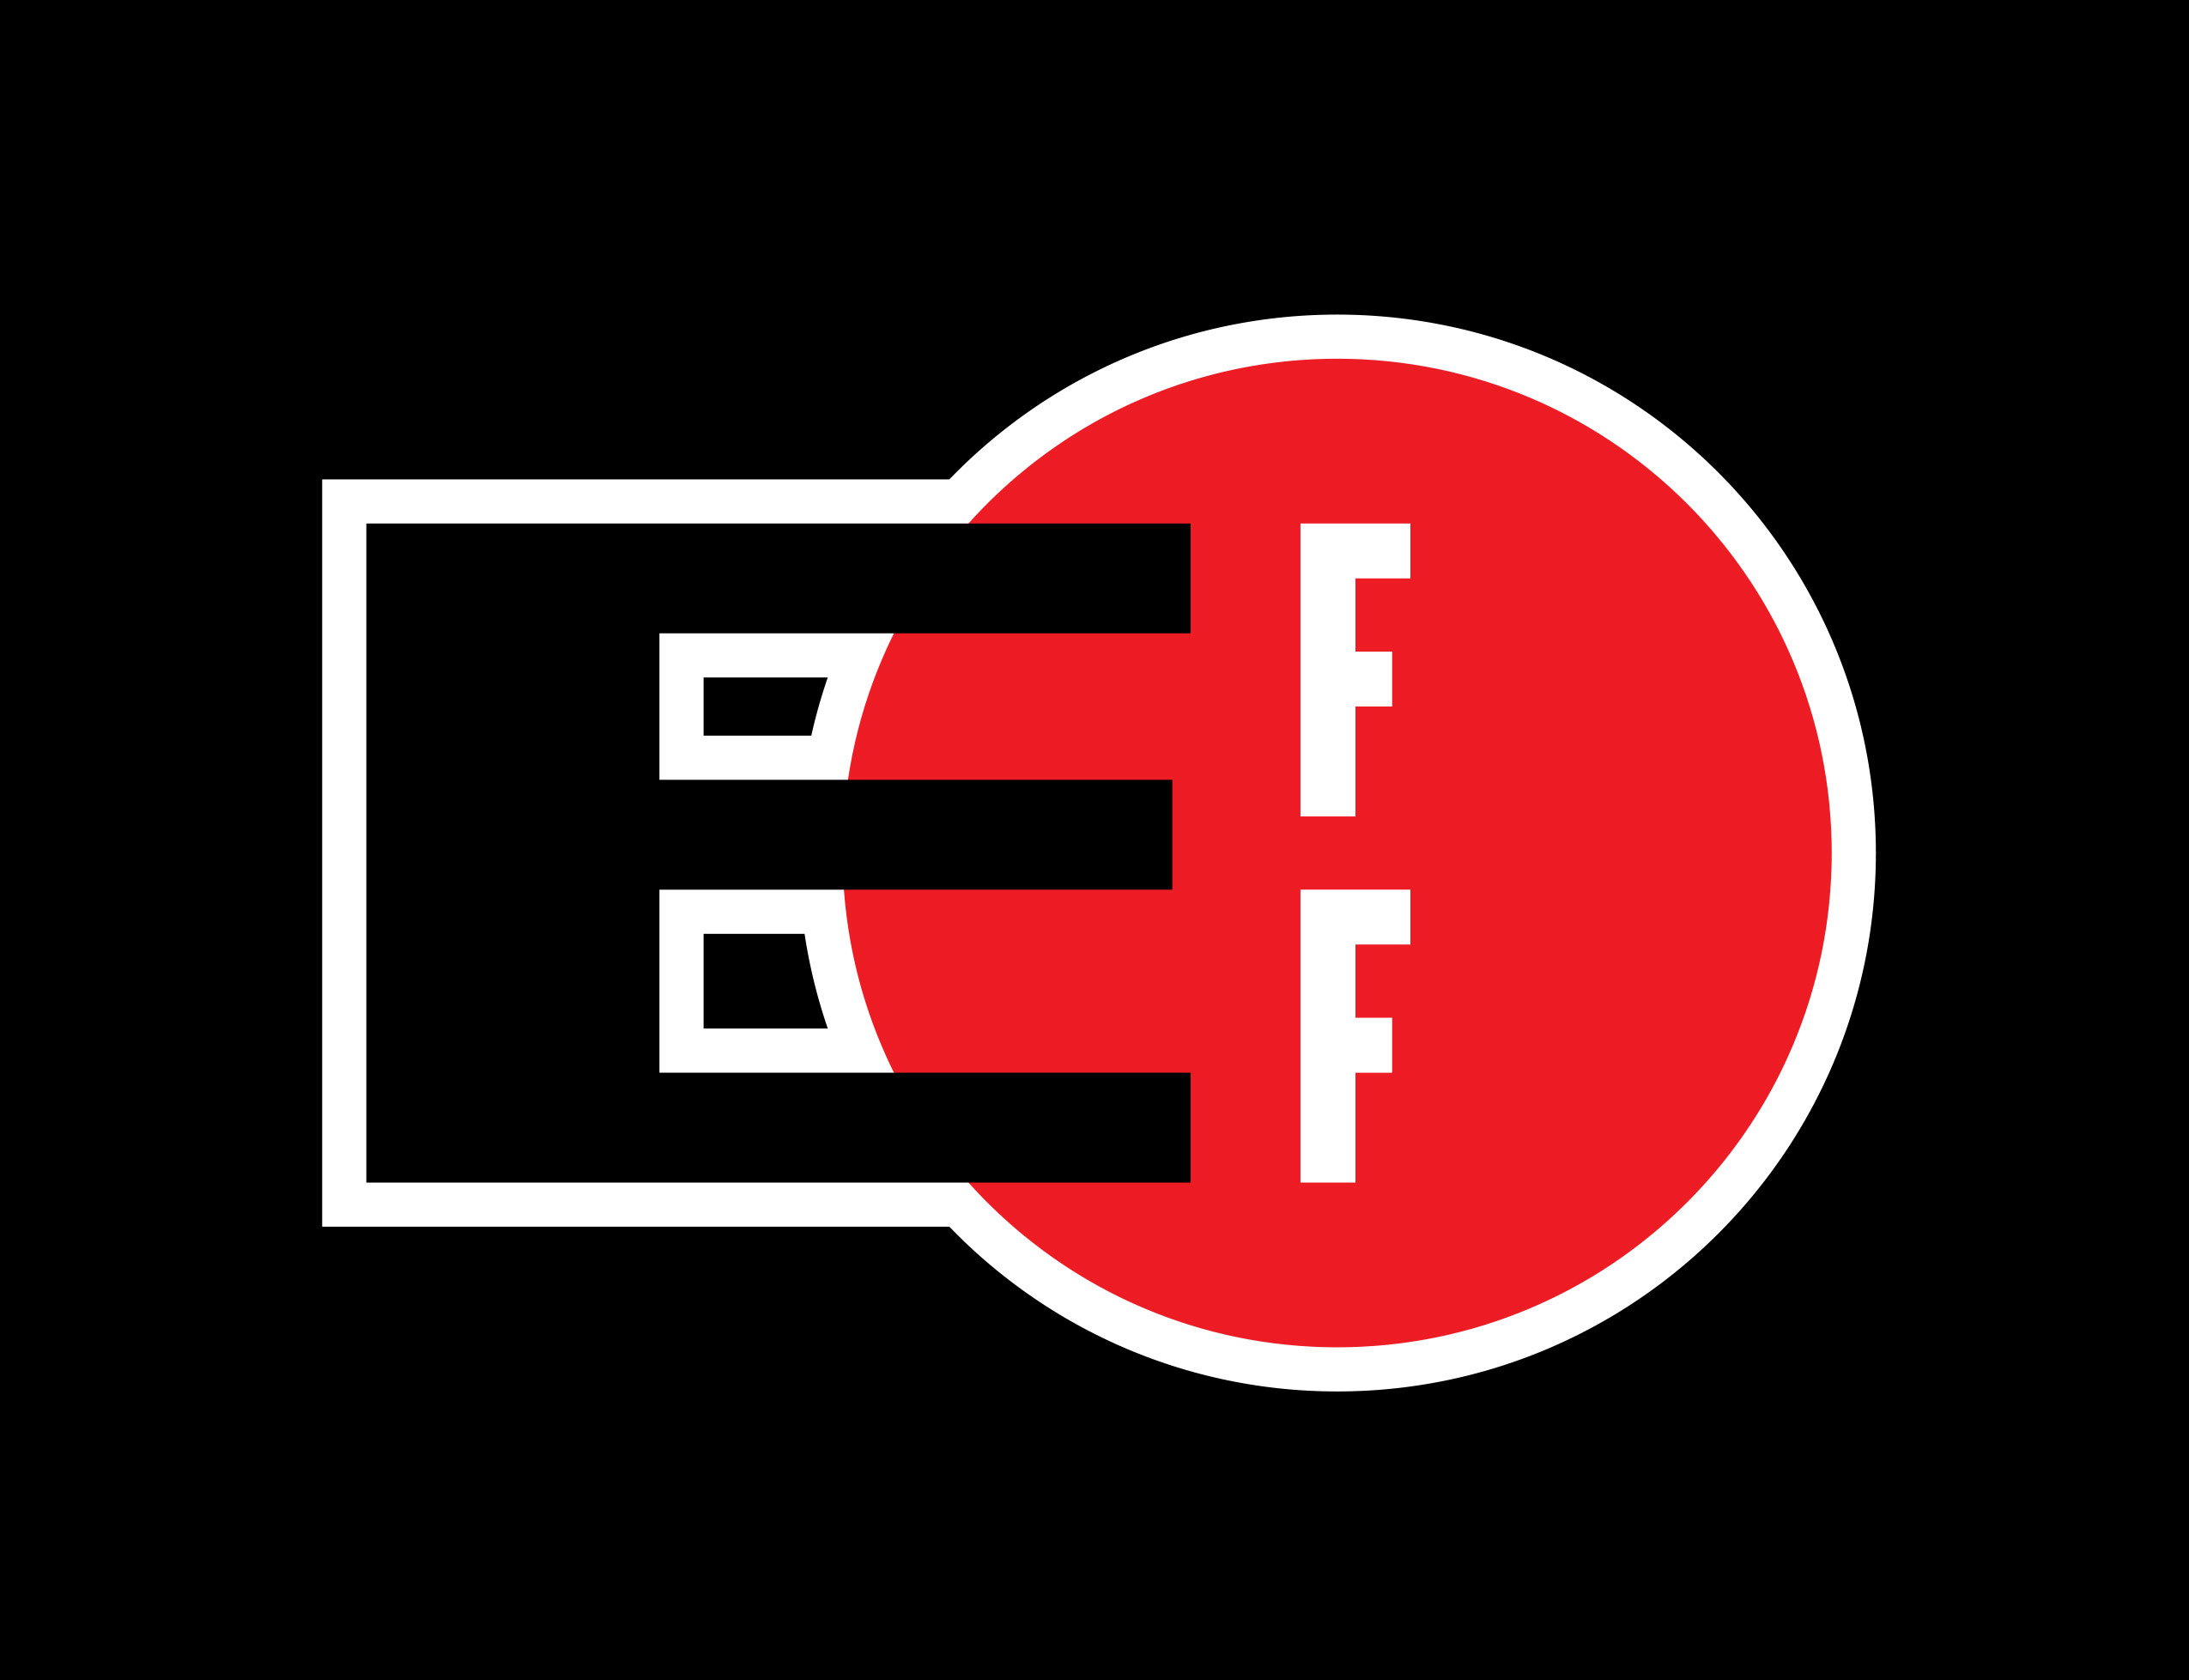 Eff Logos And Graphics Electronic Frontier Foundation